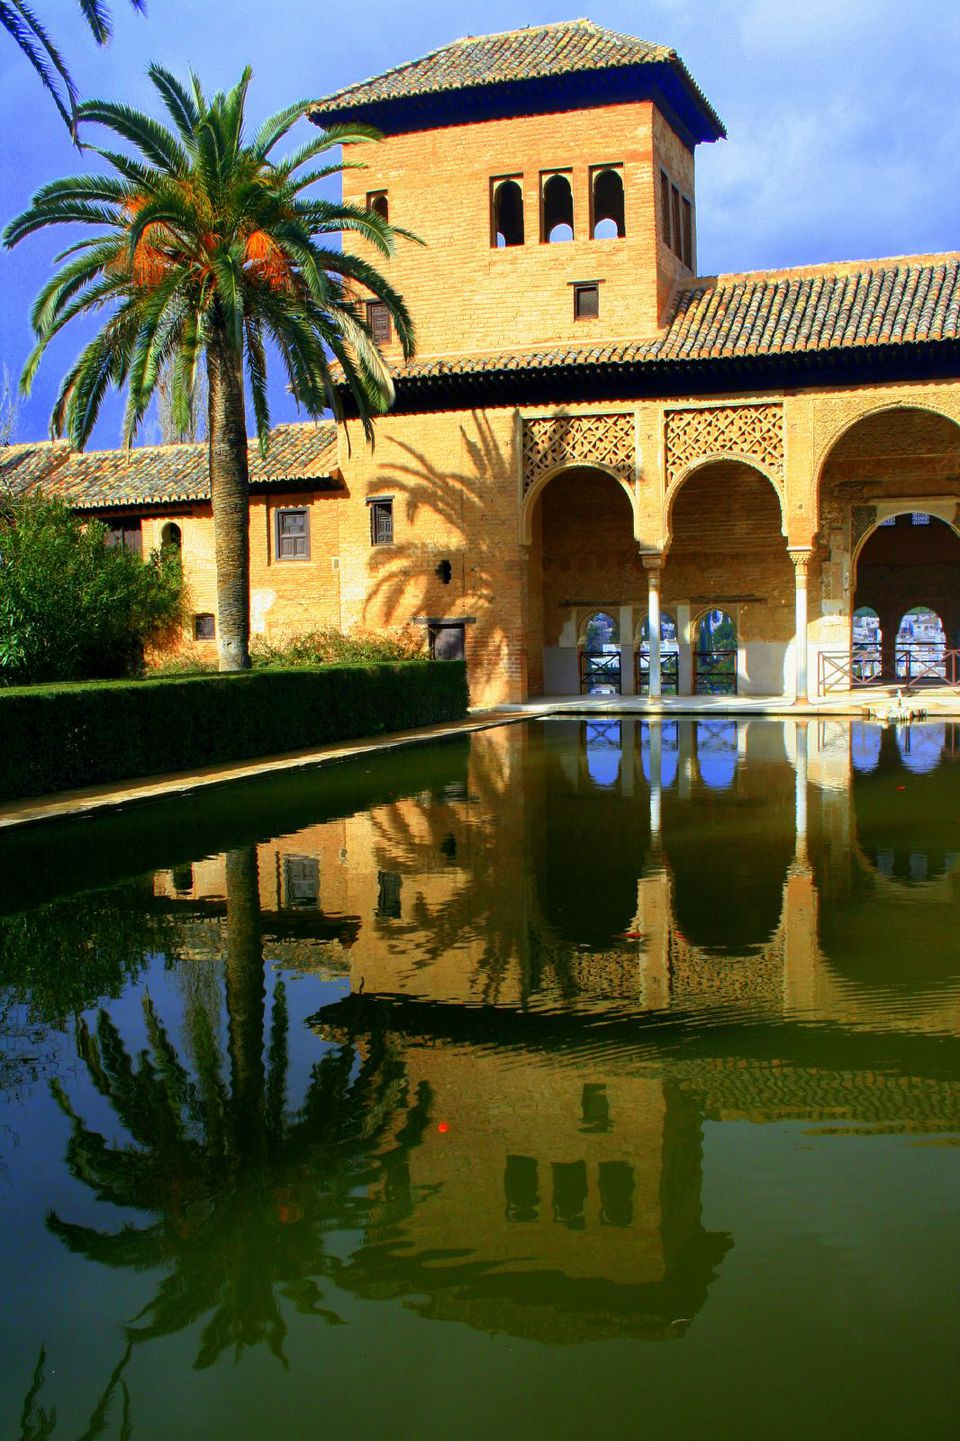 Buying alhambra tickets and tours - Alhambra ticket office opening hours ...